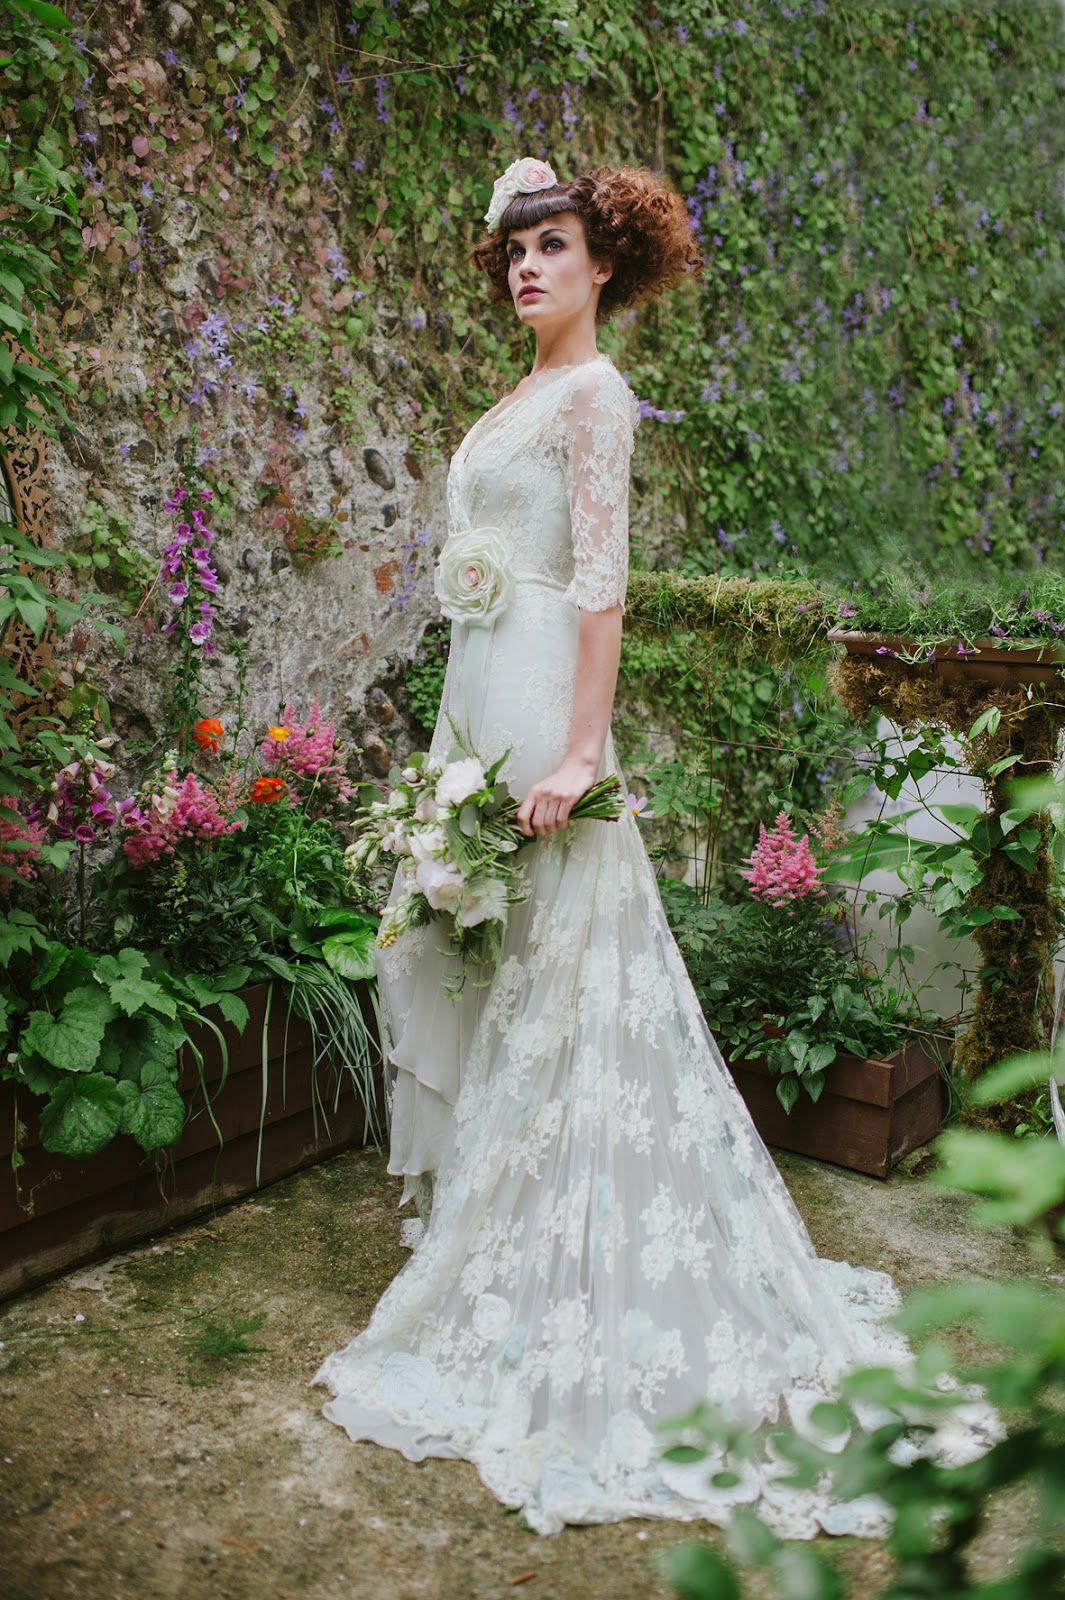 Langtry\' pale green lace Edwardian style wedding gown by Joanne ...